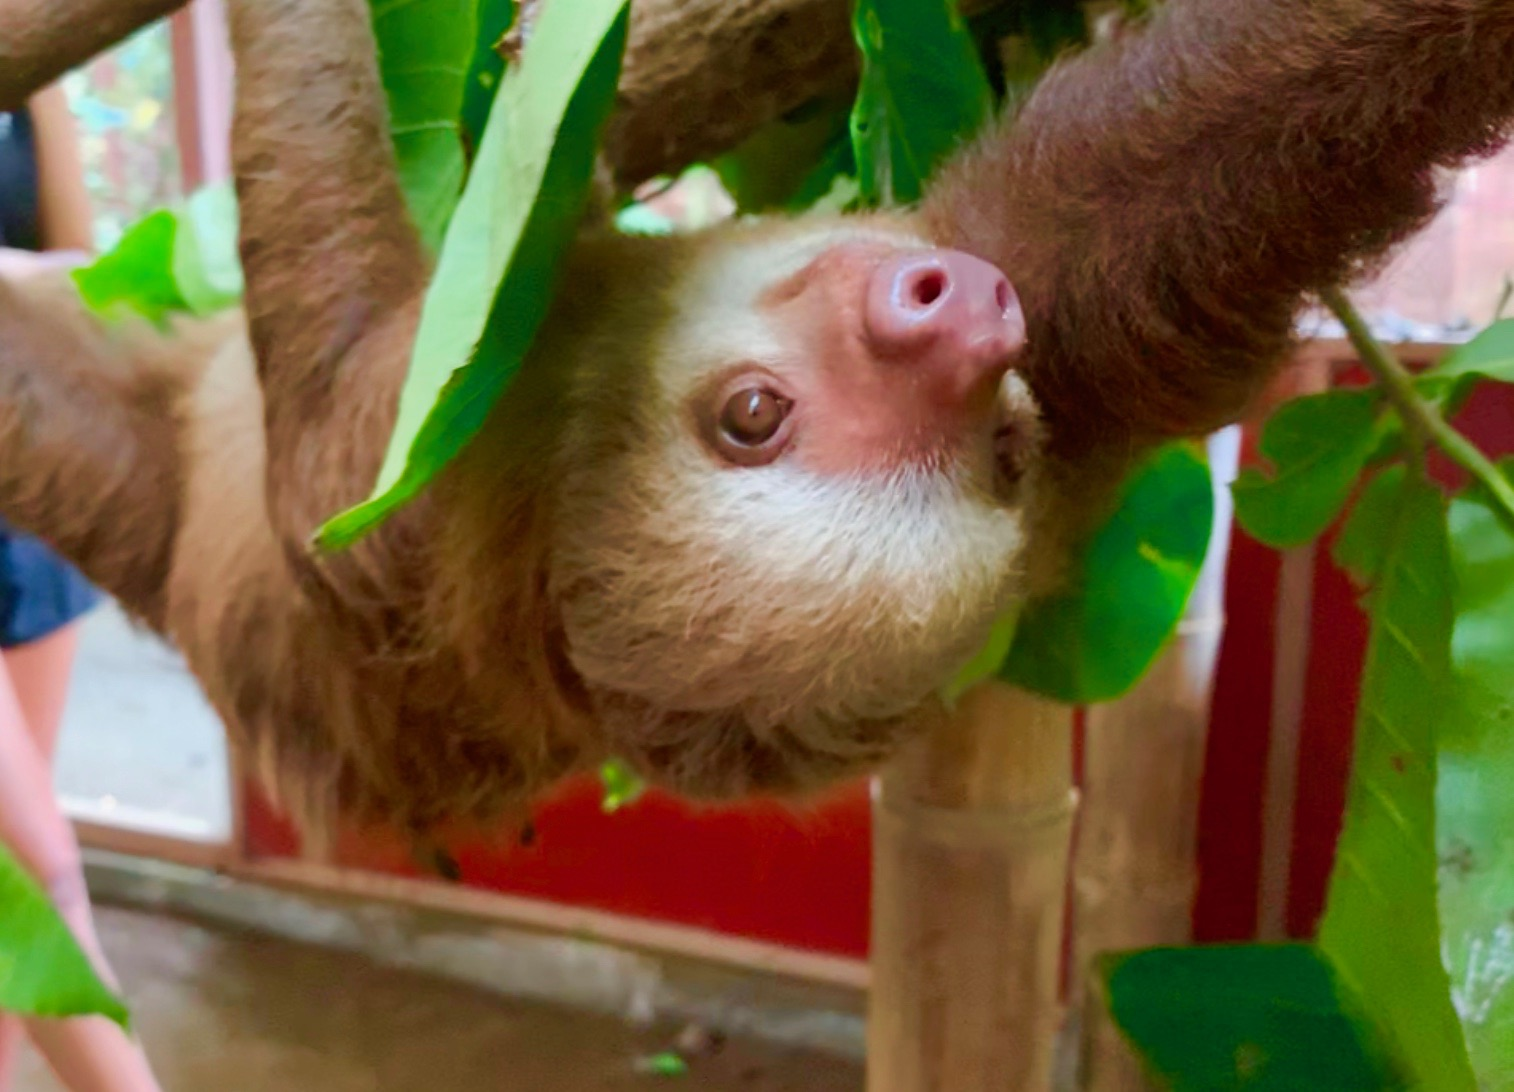 This adolescent two-toed sloth is cared for at the Jaguar Rescue Center near Puerto Viejo, Costa Rica.